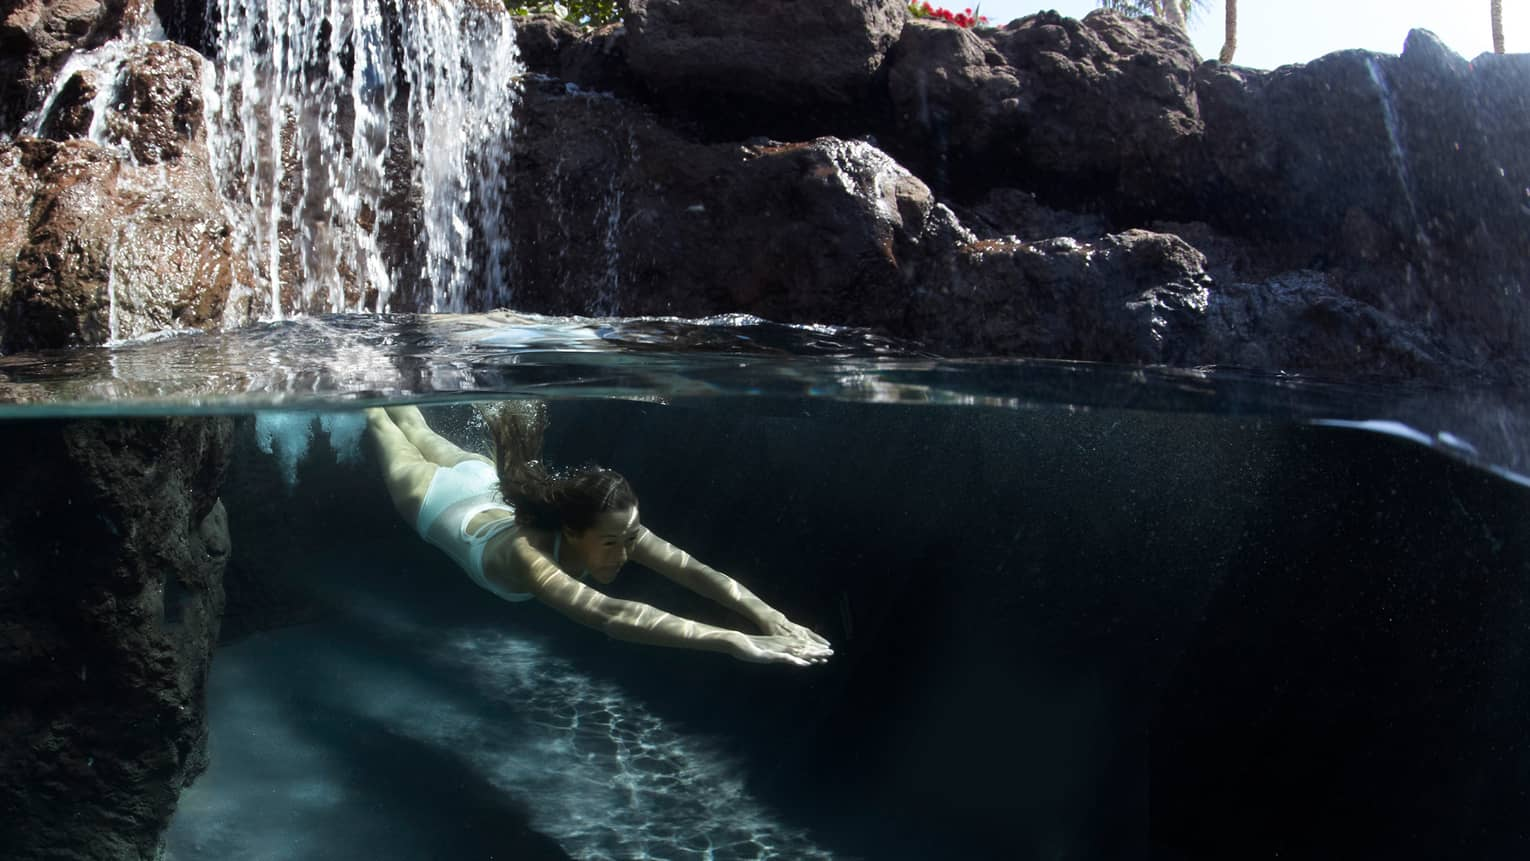 Woman dives underwater, waterfall behind her